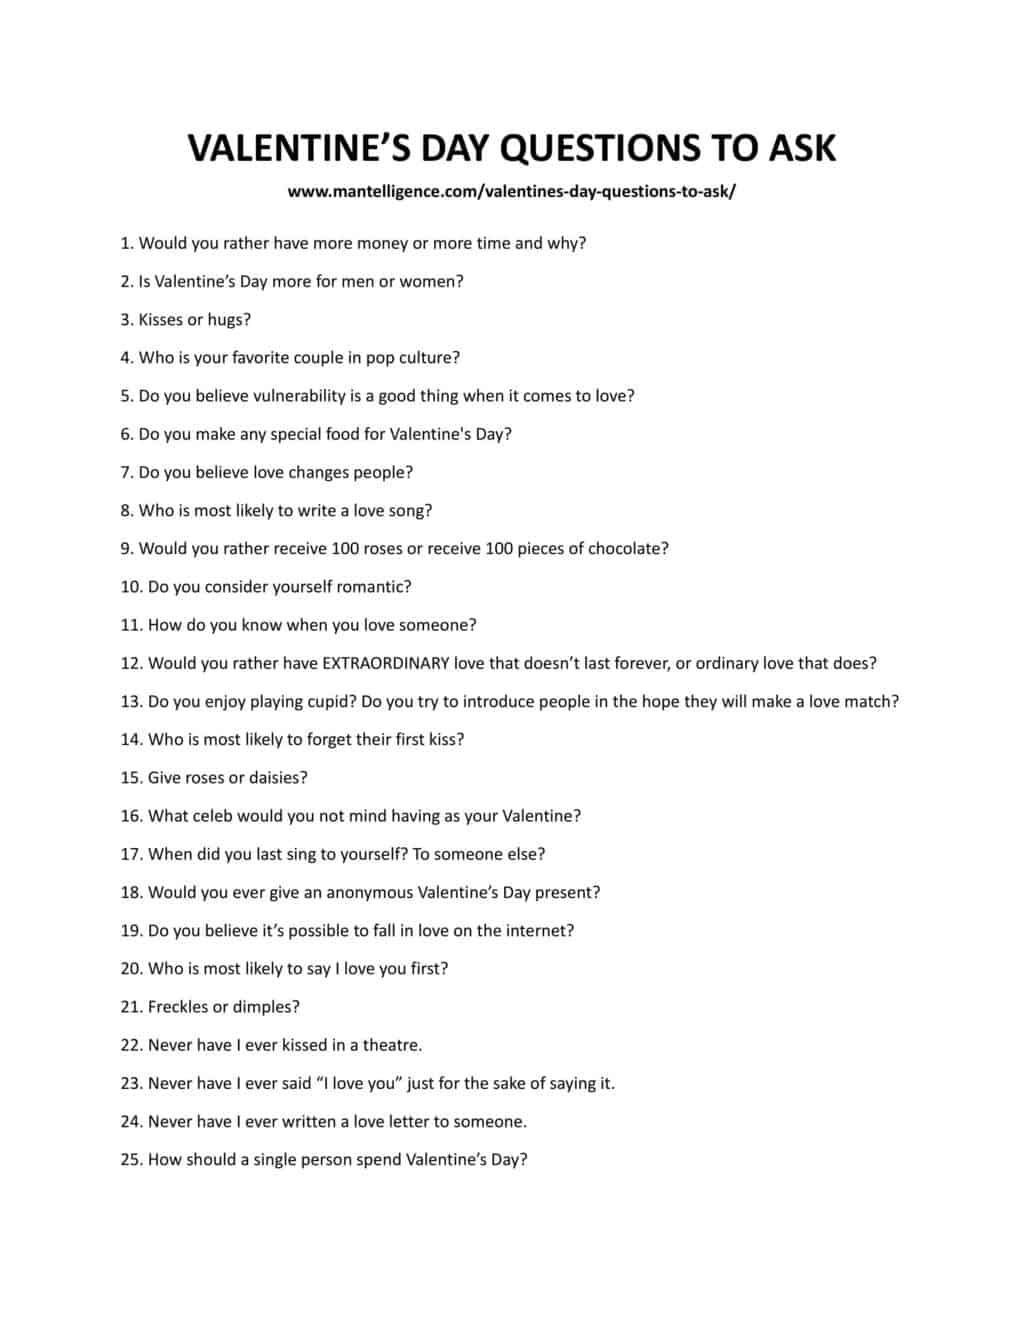 Downloadable list of questions for valentine's